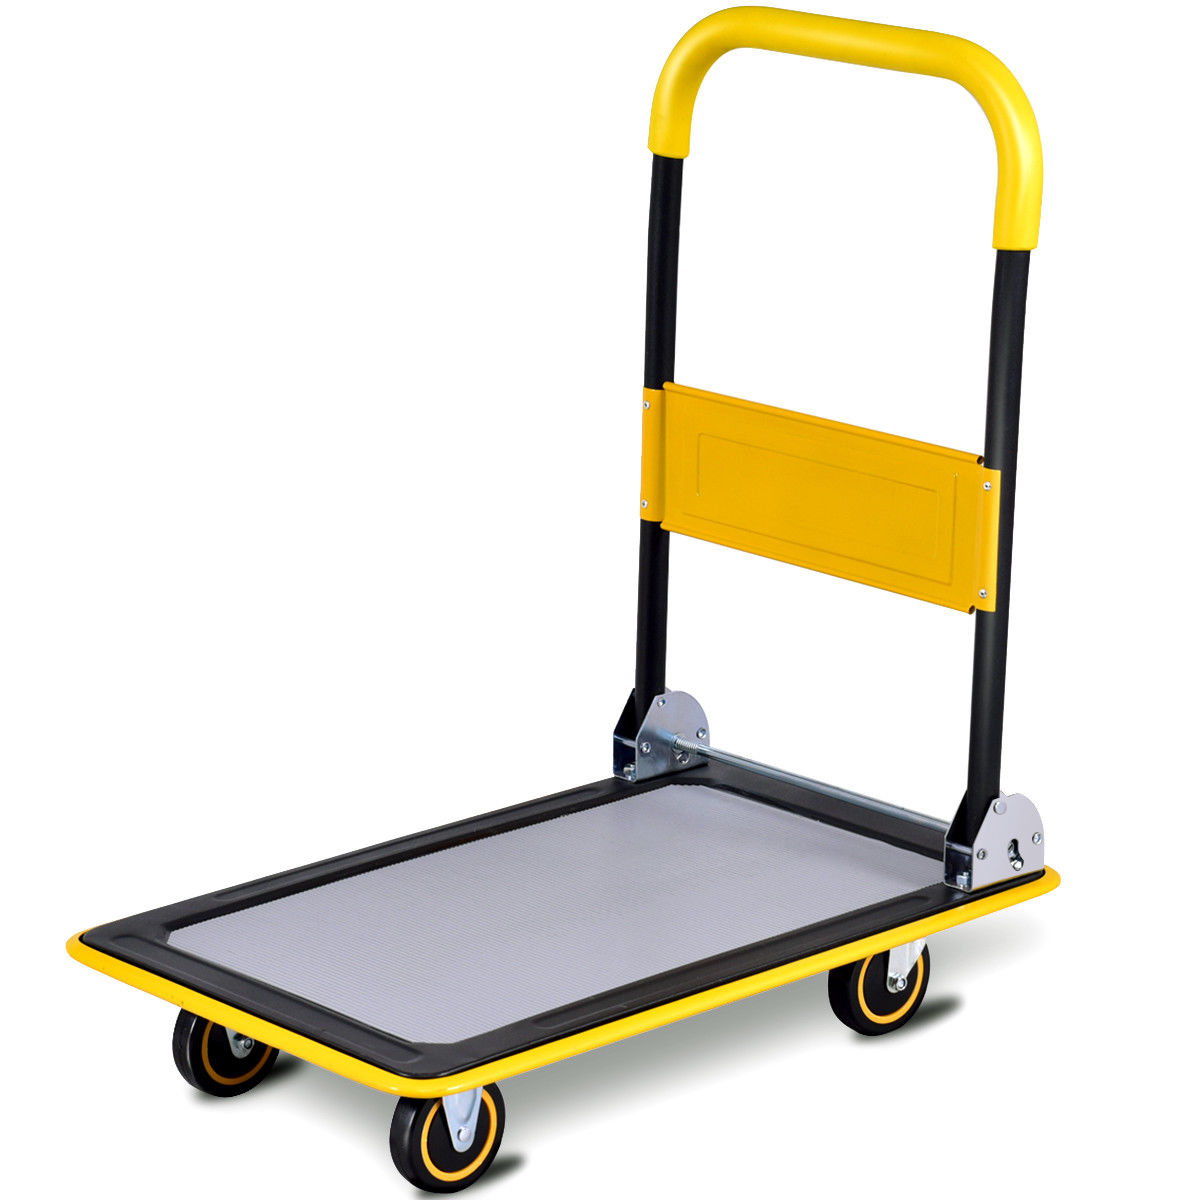 Costway 330lbs Folding Platform Cart Dolly Push Hand Truck Moving Warehouse Foldable by Costway